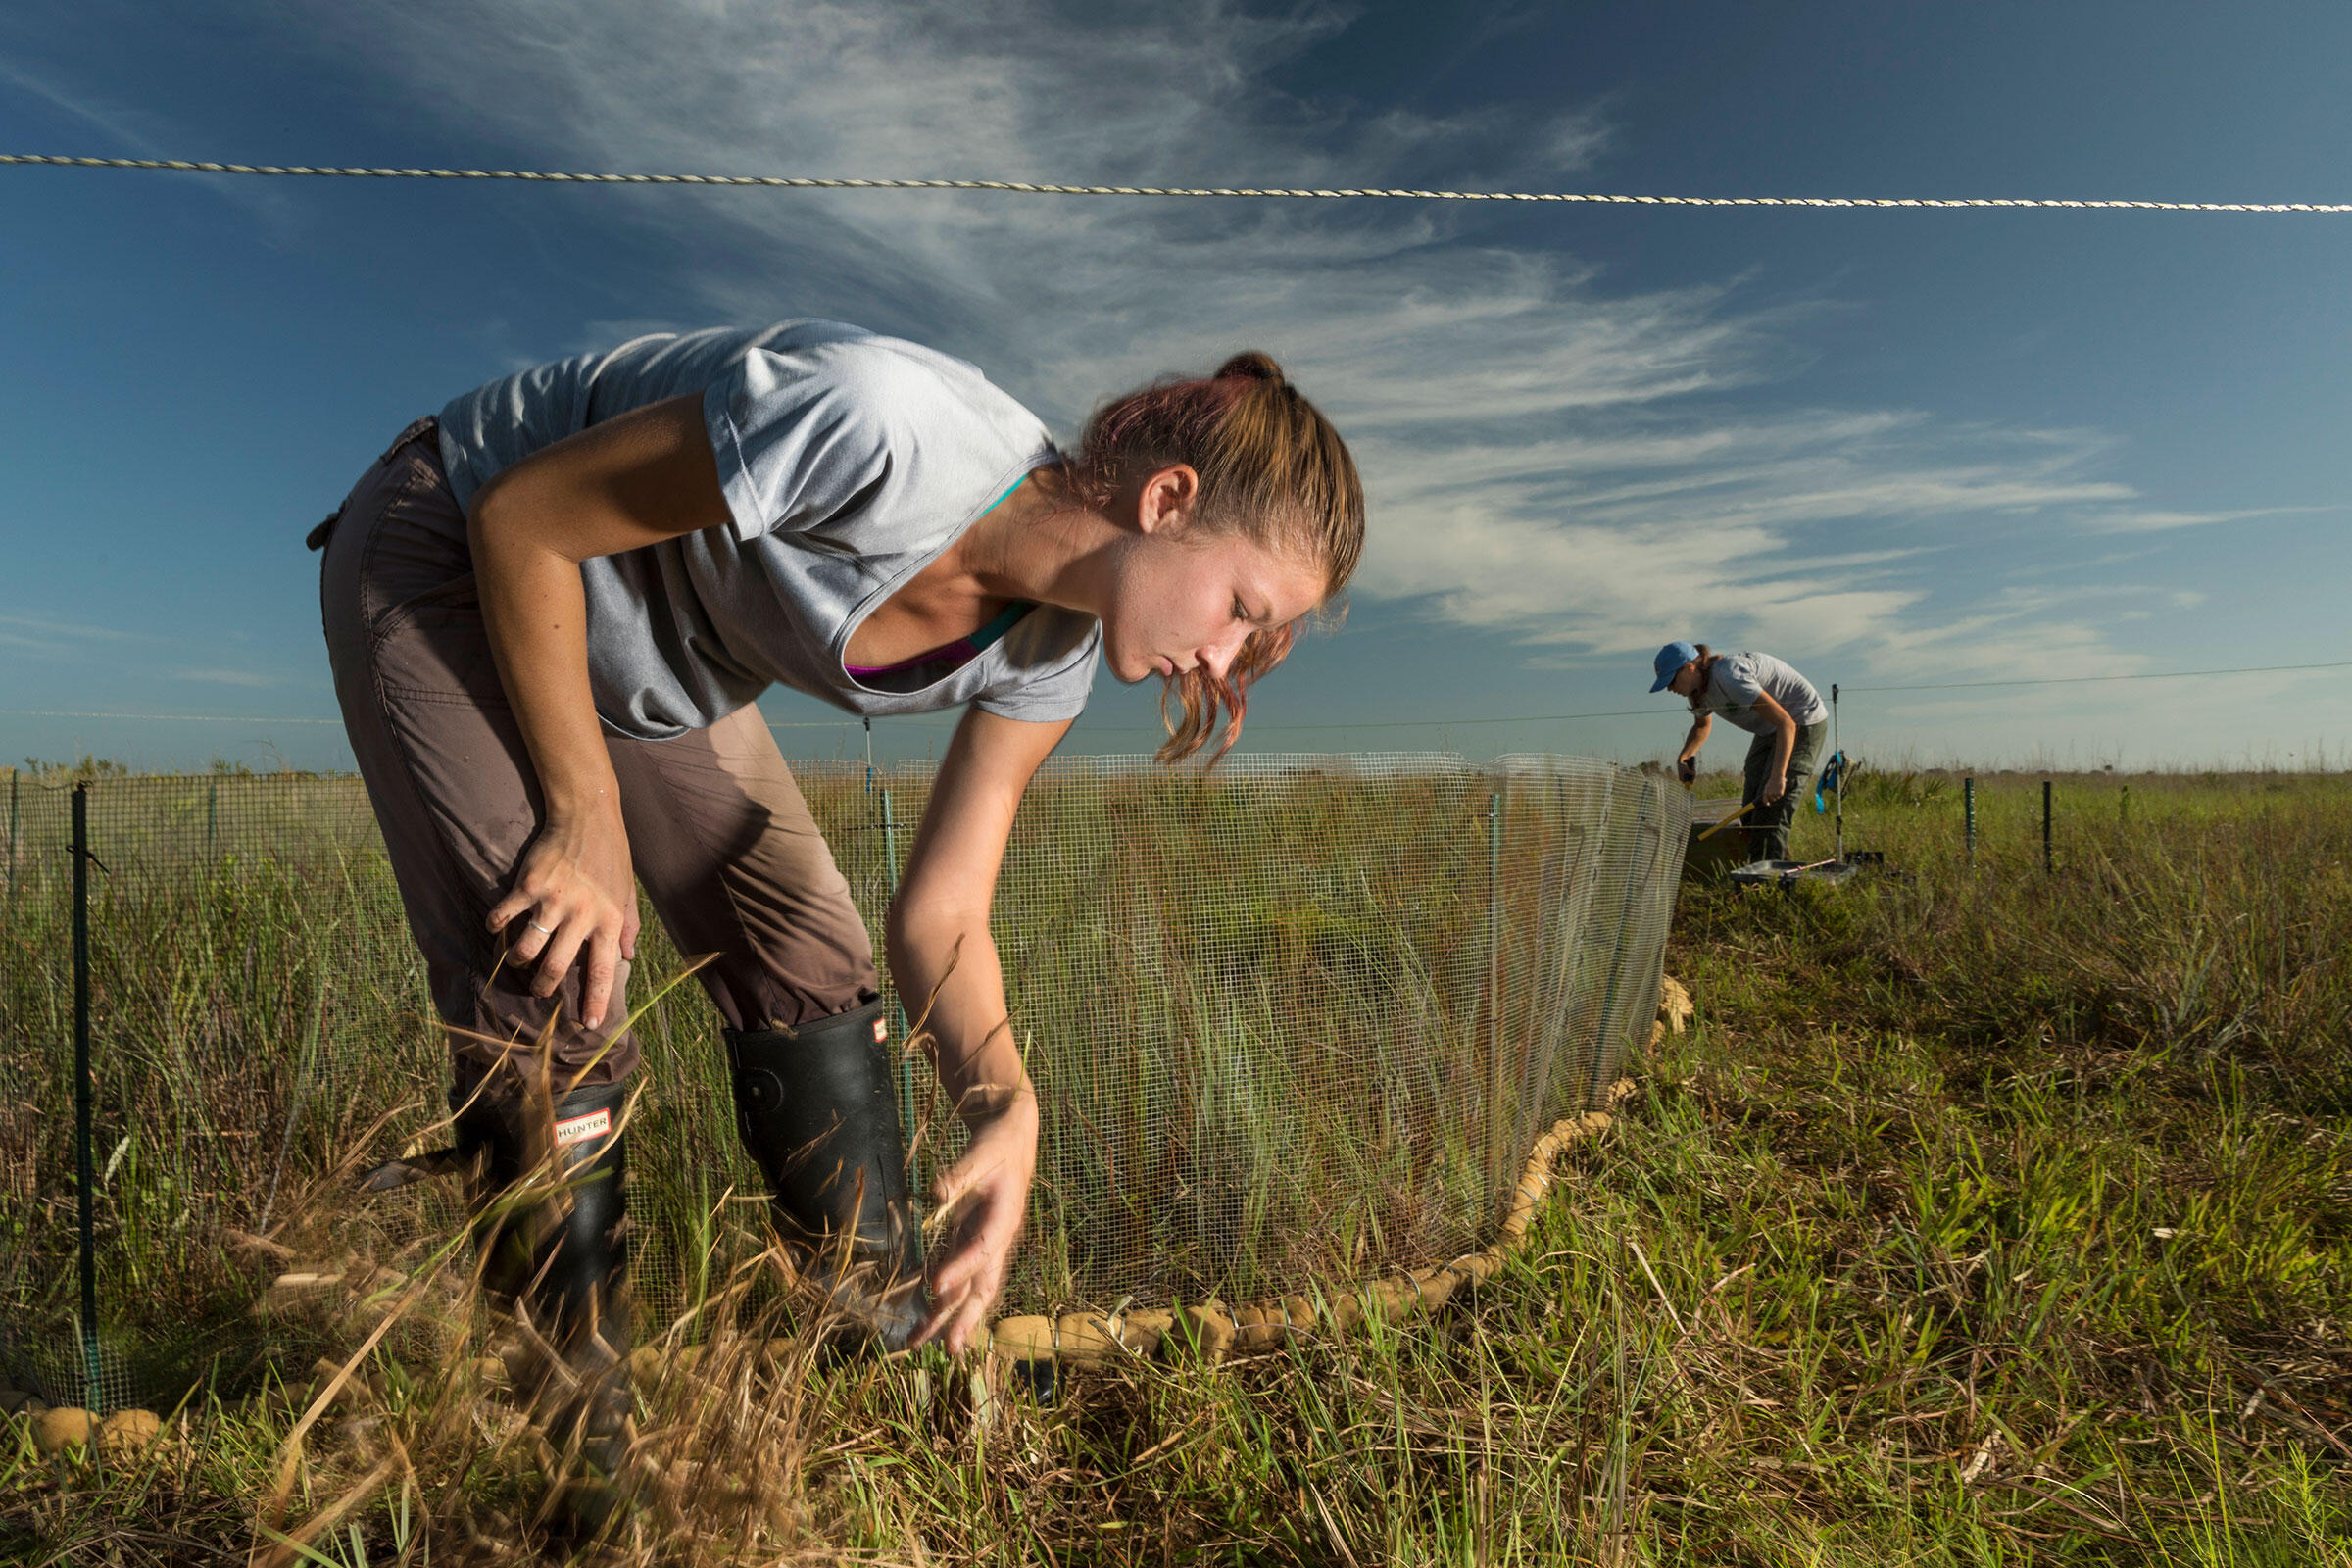 USFWS field techs Natalie Sweeting (foreground) and Rebecca Windsor clear away grasses around a new nest-protection fence. Mac Stone